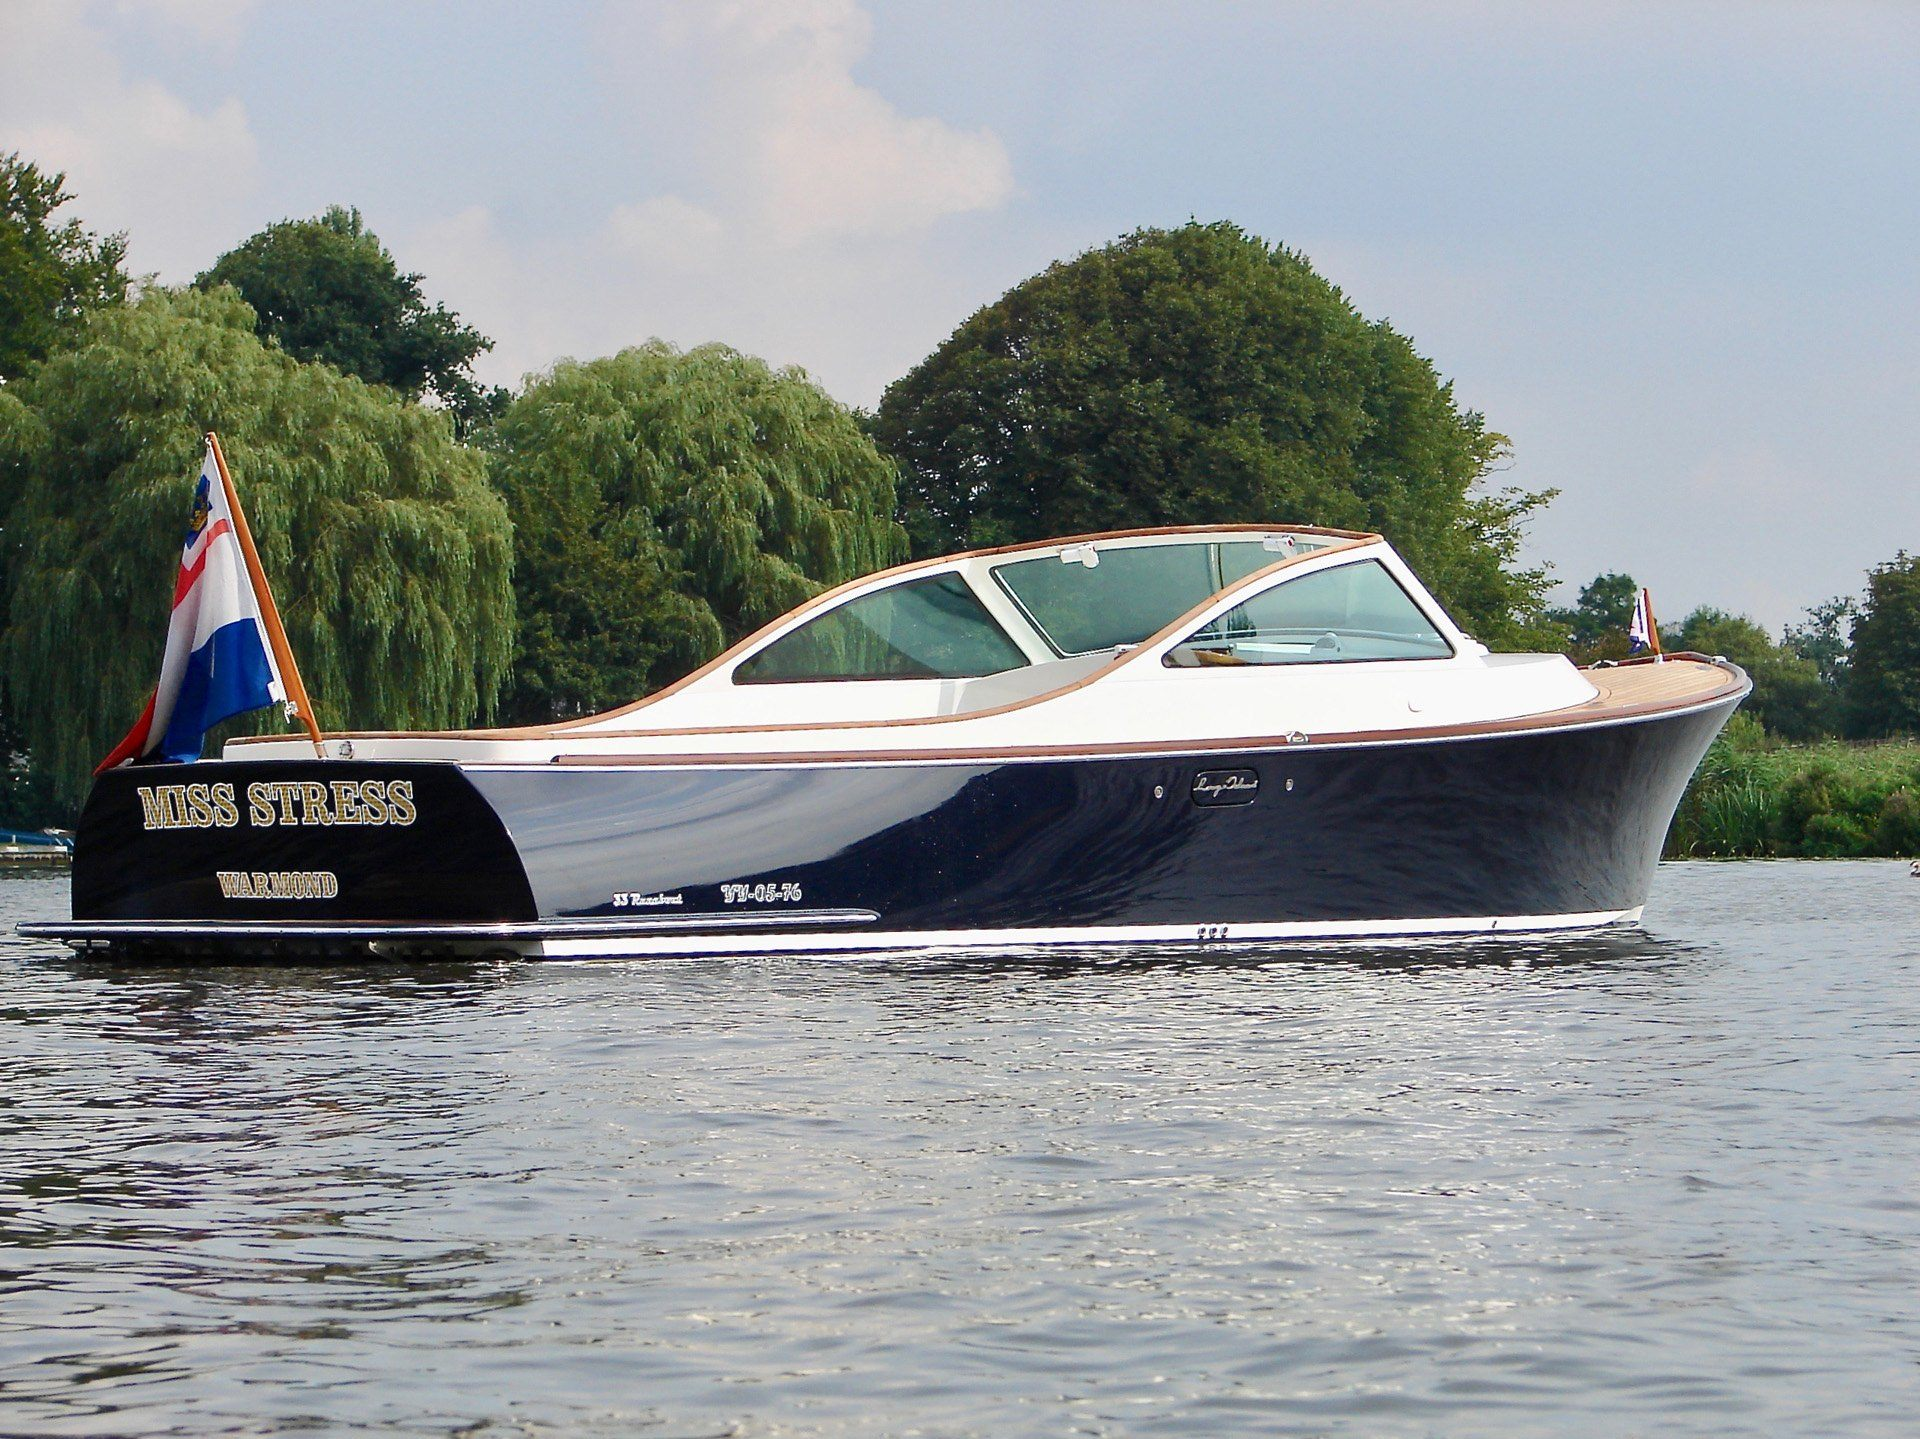 Long Island Yachts, Holland's premier yacht builder.